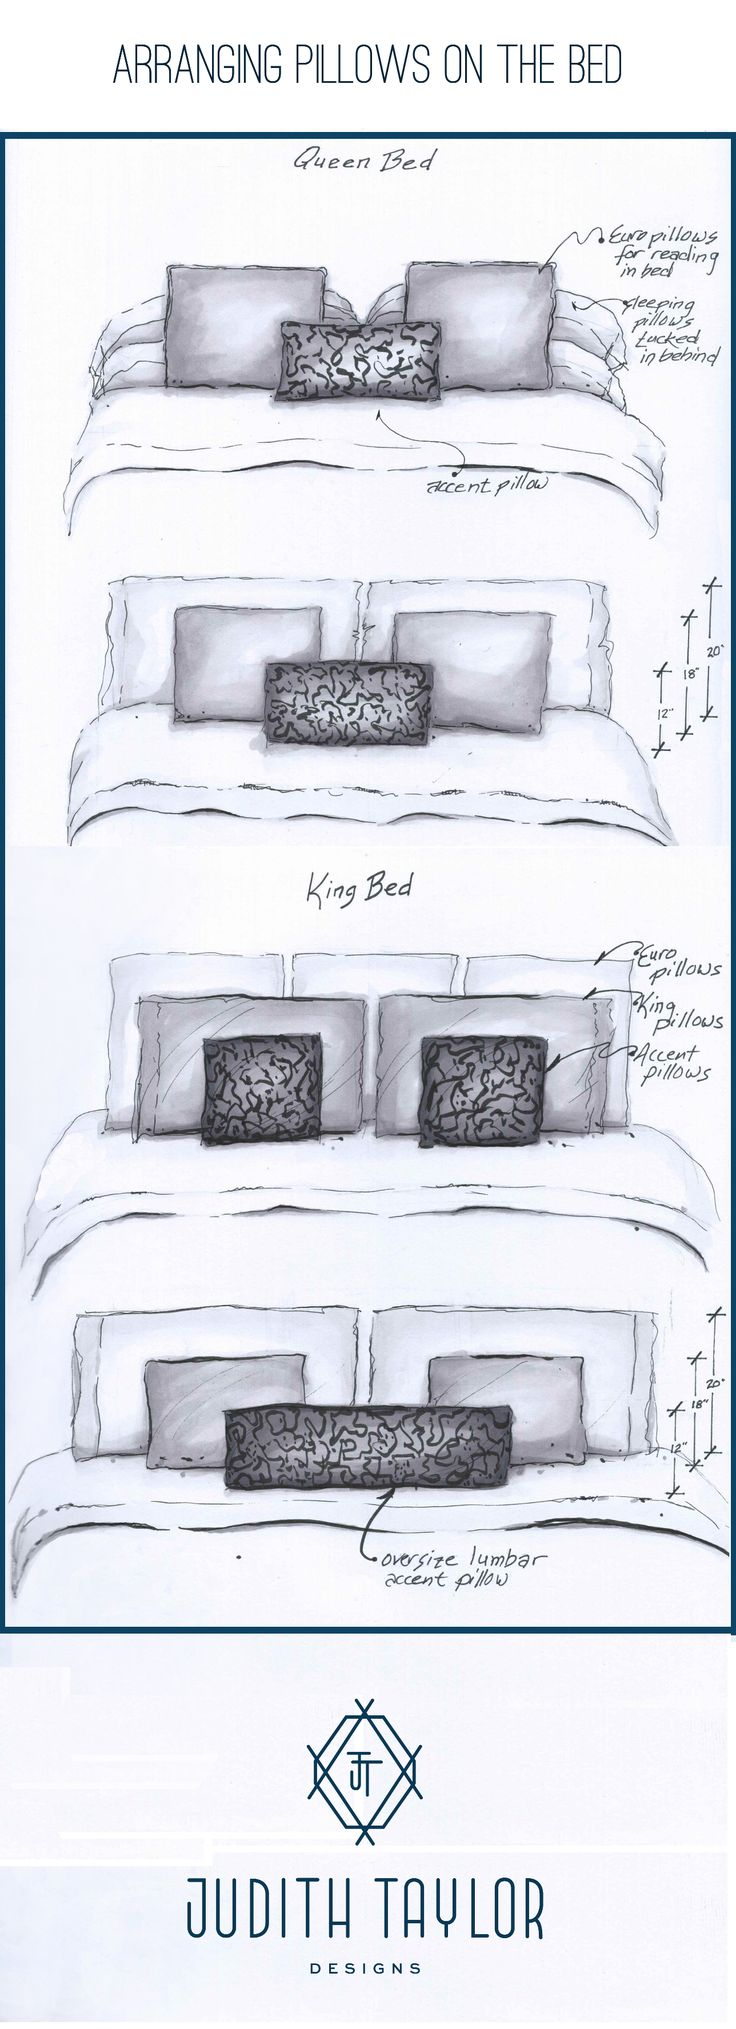 Bed pillows decorative - Arrangement And Sizing For Pillows On Queen And King Bed Www Judithtaylordesigns Com